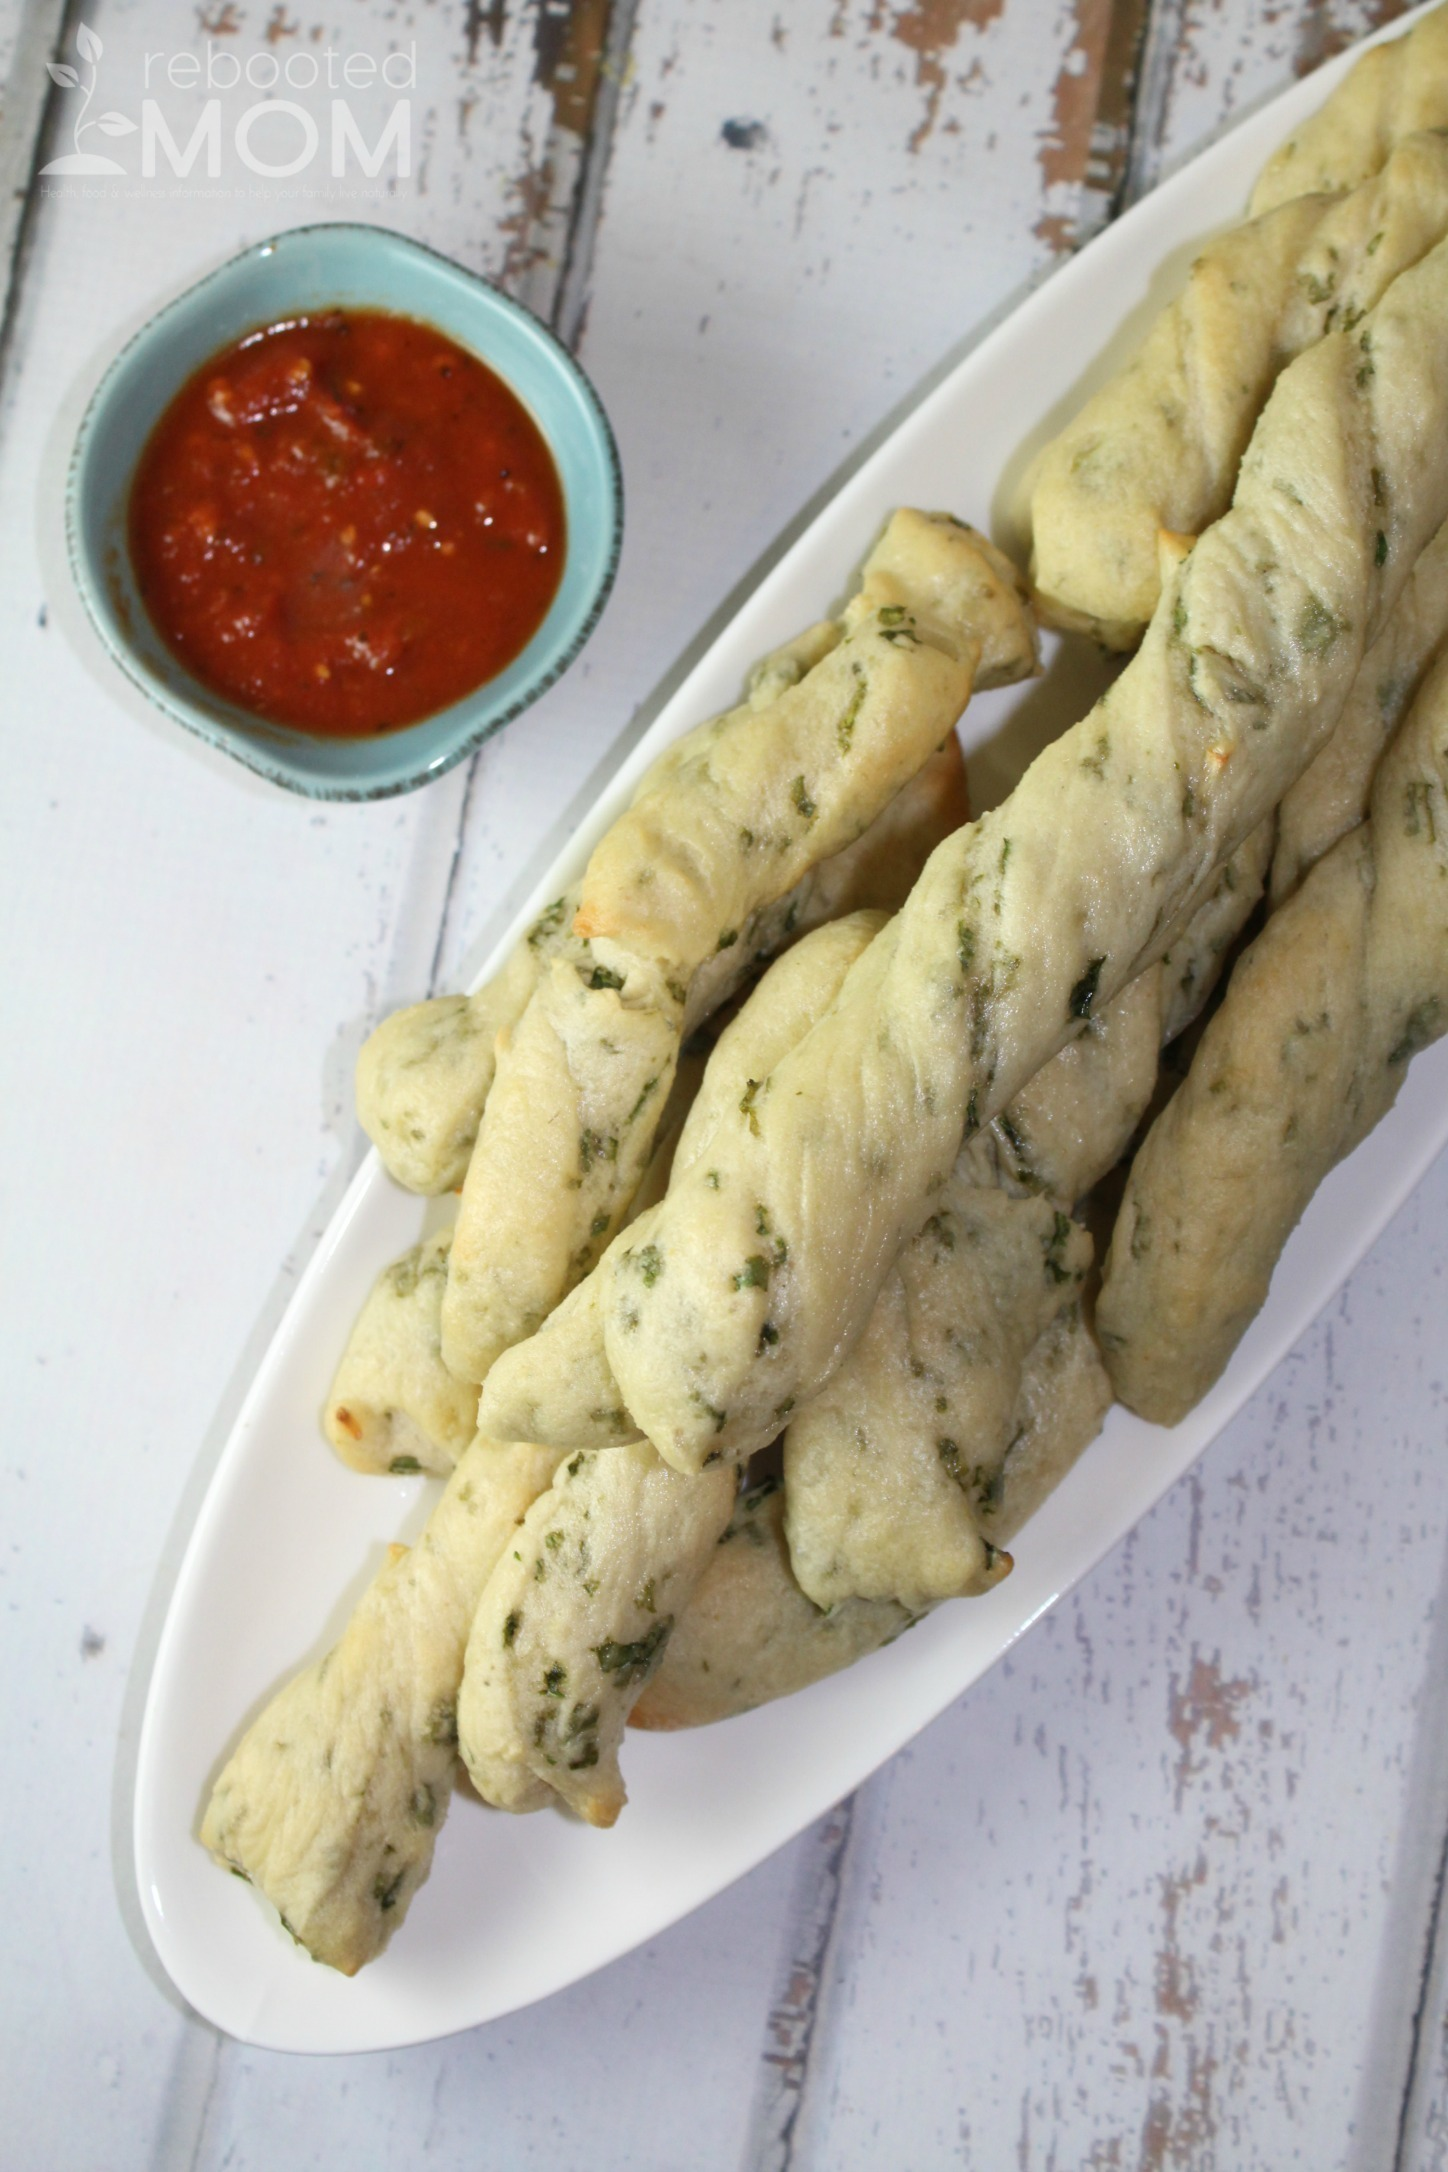 These Kale Garlic Breadsticks are a wonderful way to use up fresh kale and perfect to pair with chilly fall soups! #bread #kale